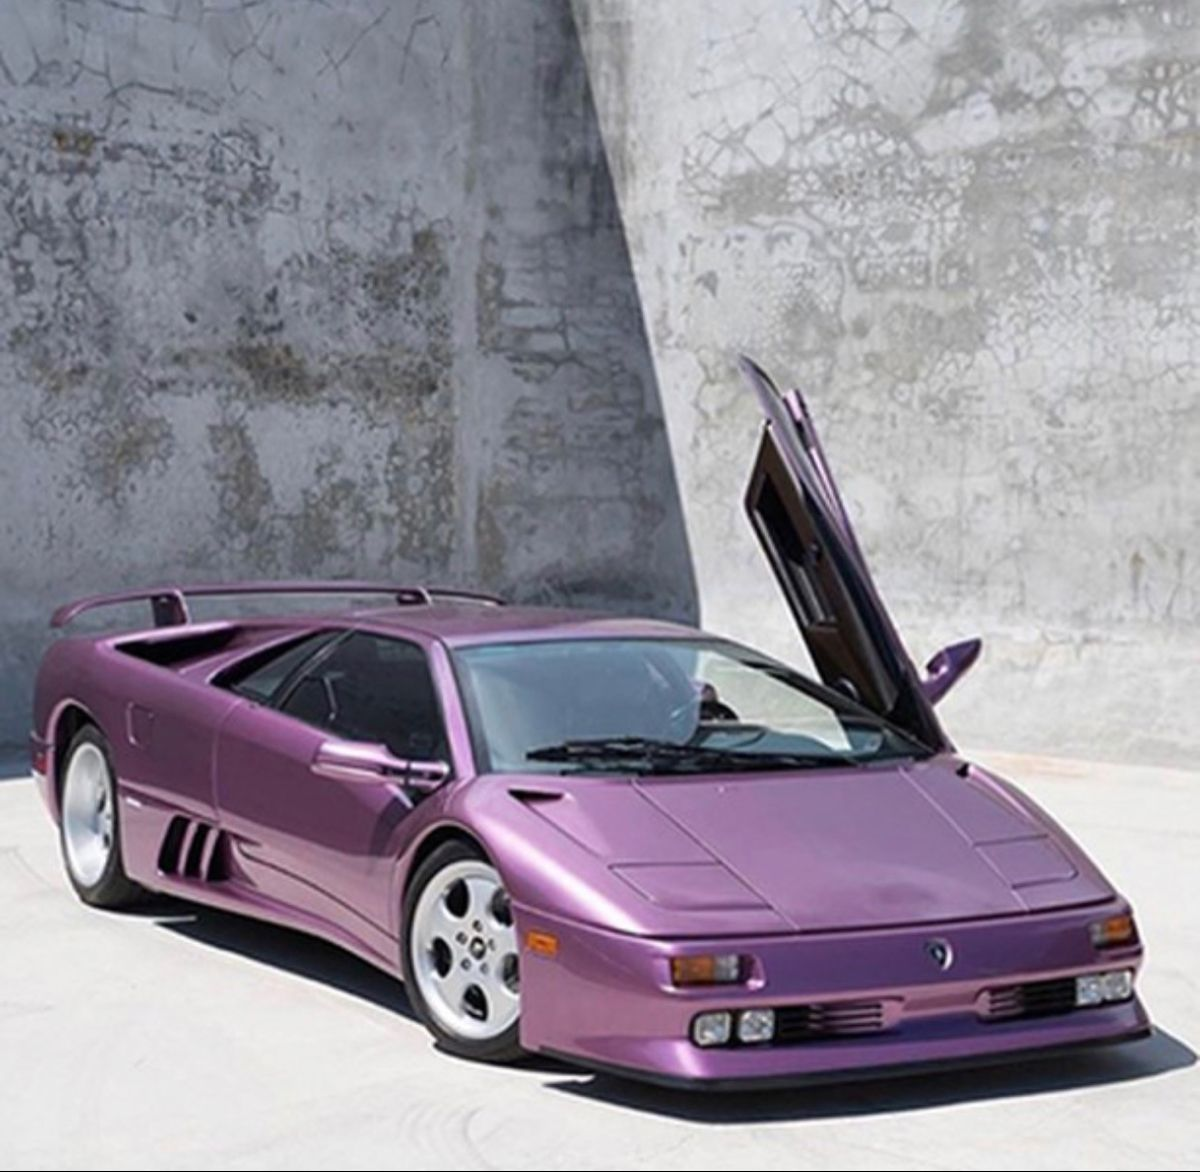 pin by a lo xvii on purple lifestyle in 2020 lamborghini diablo lamborghini super cars pinterest